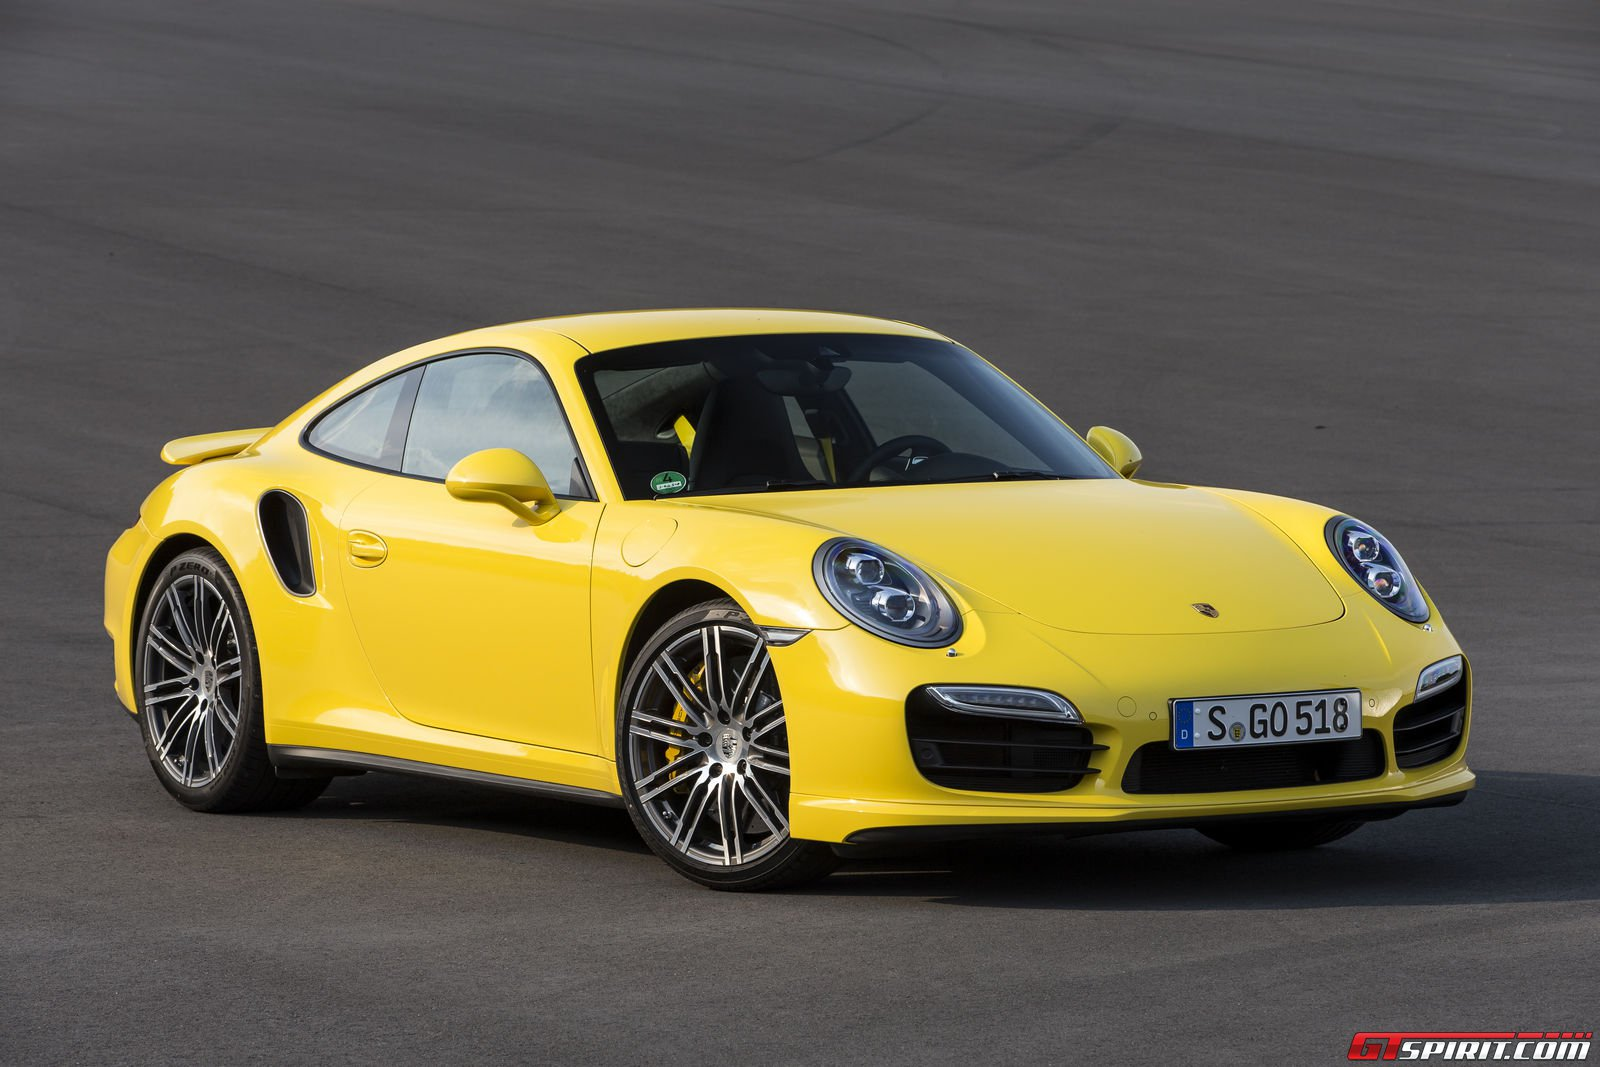 Road Test: 2014 Porsche 991 Turbo & Turbo S Review